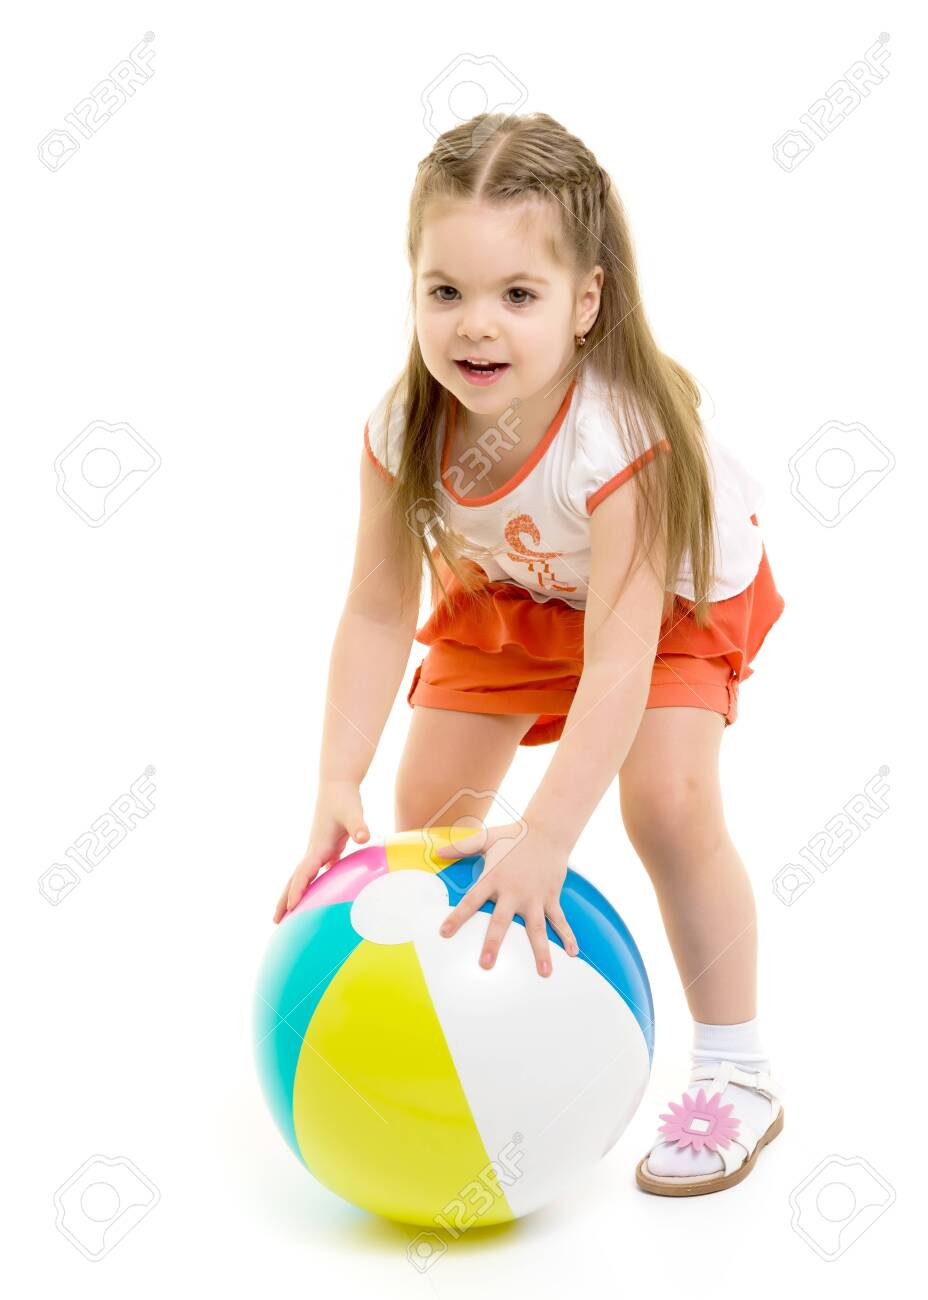 Little girl is playing with a ball - 130618583